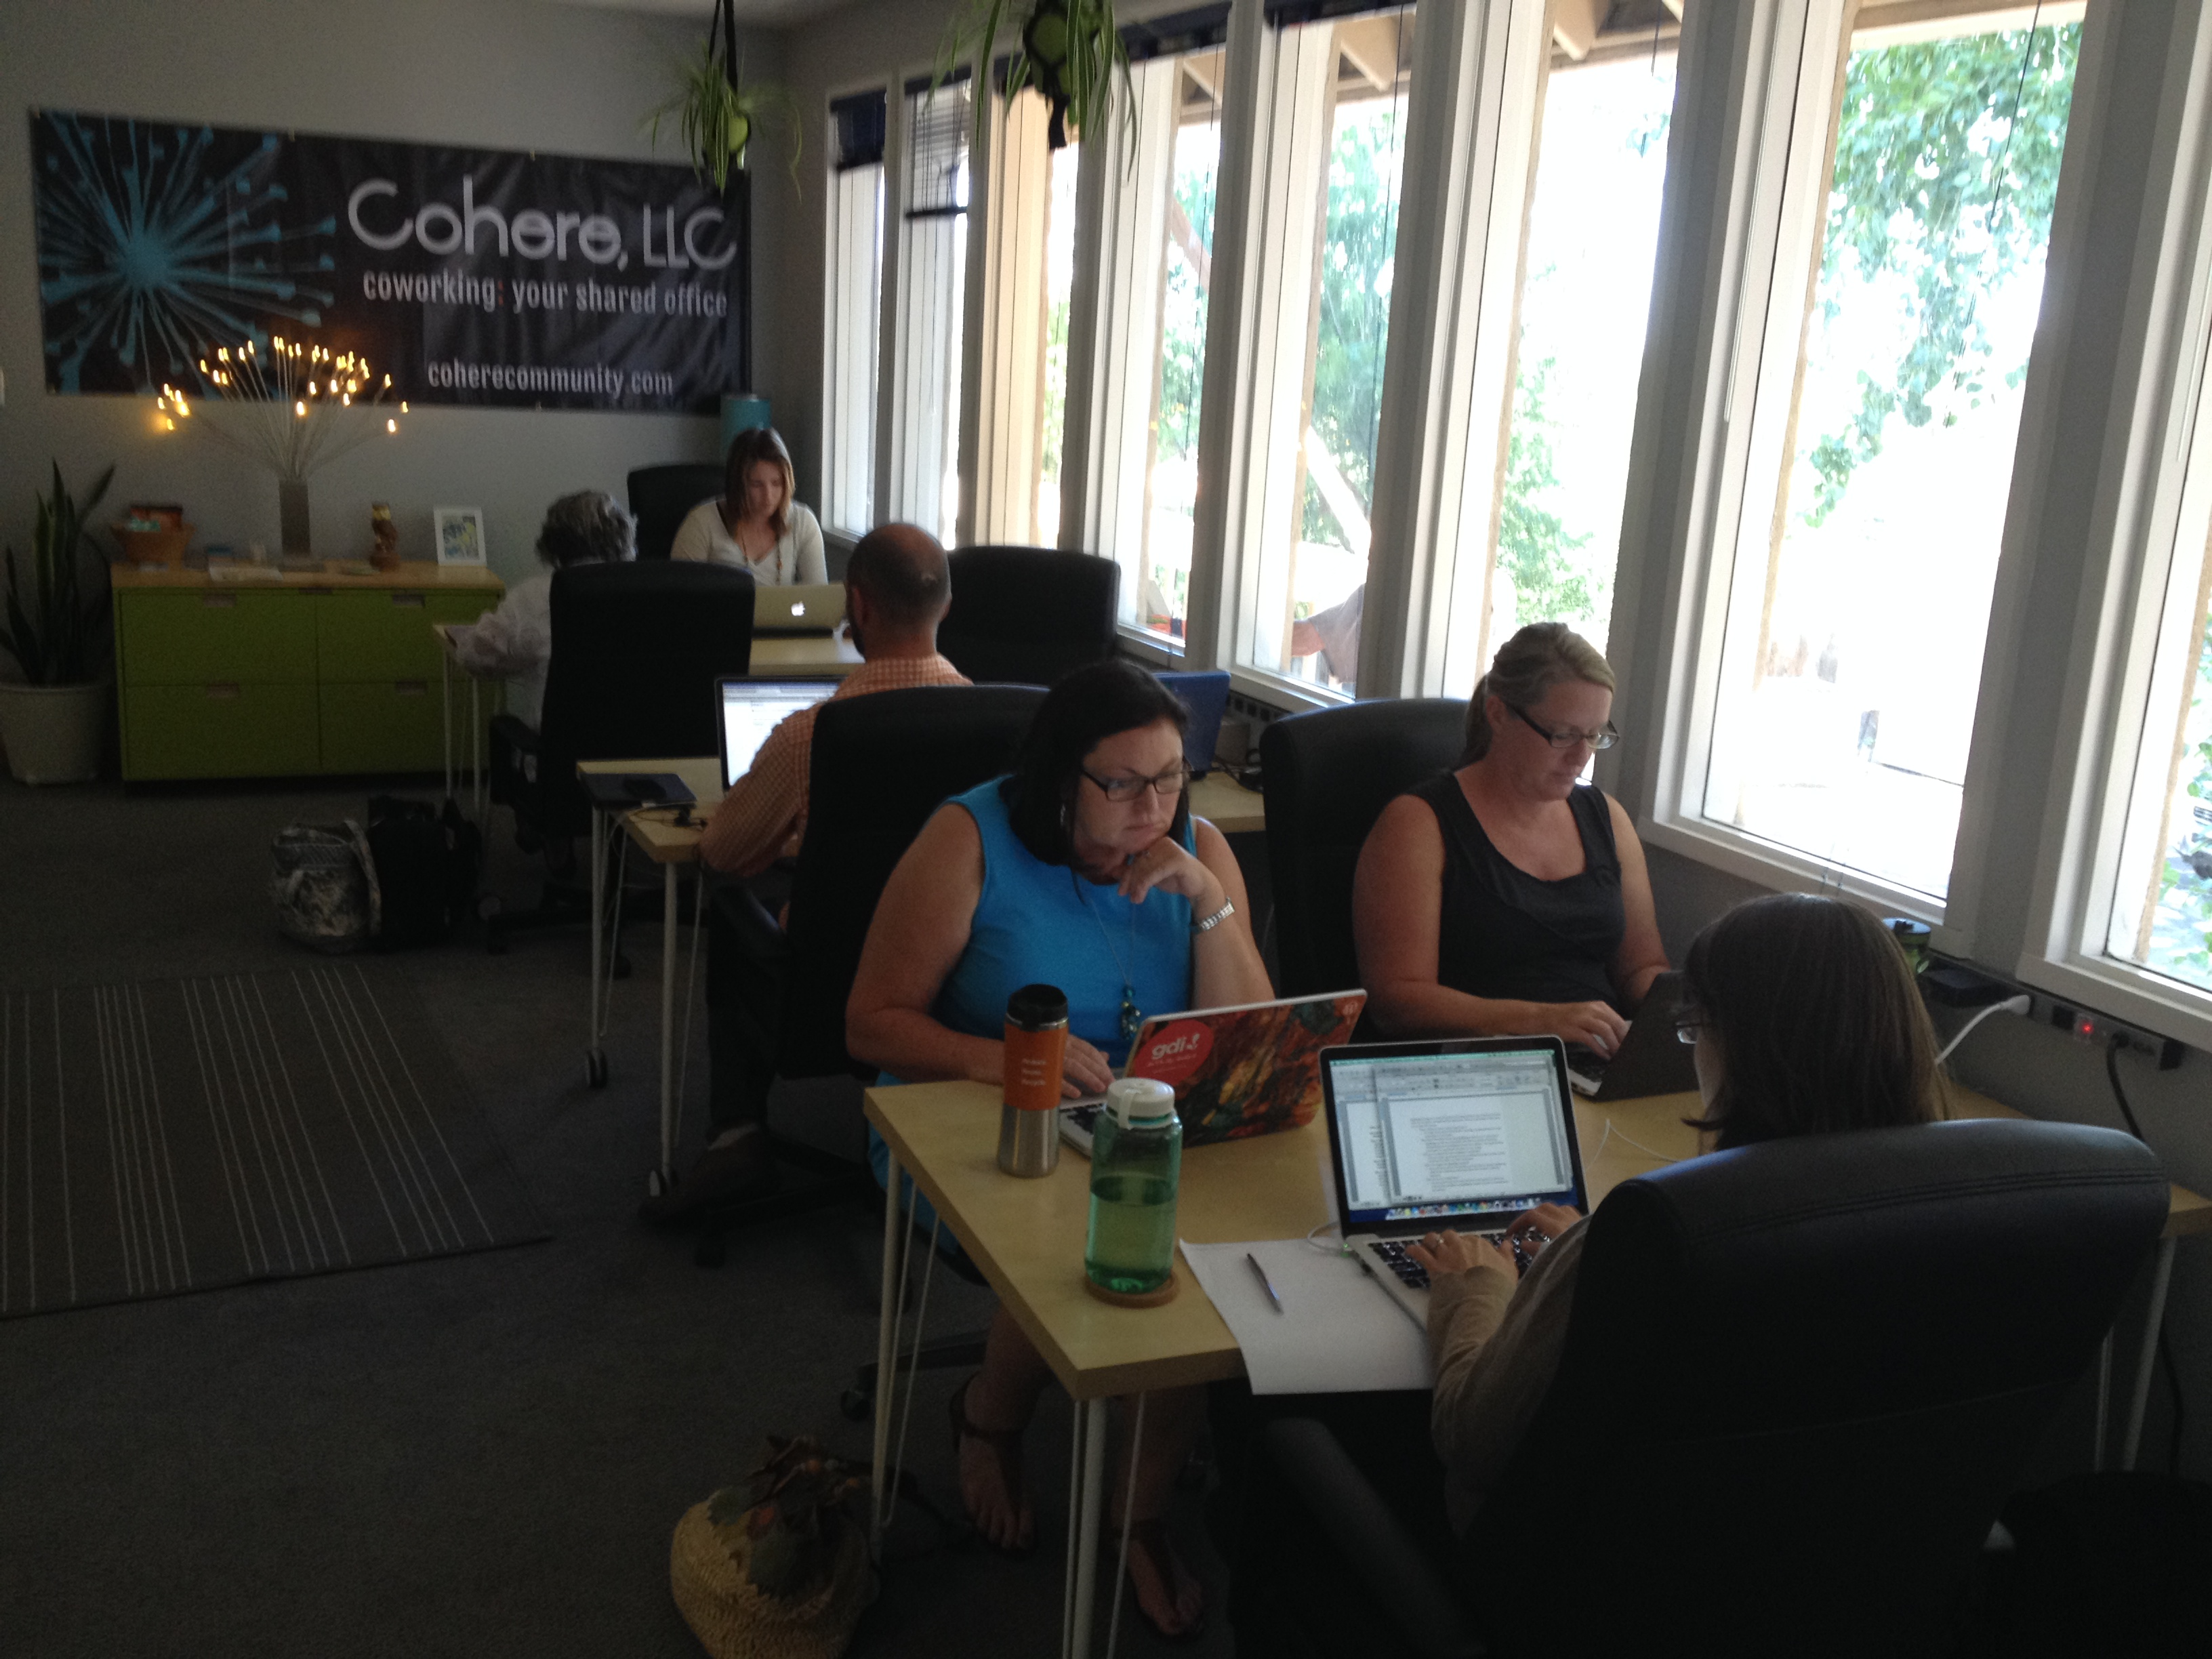 Cothere_Coworking